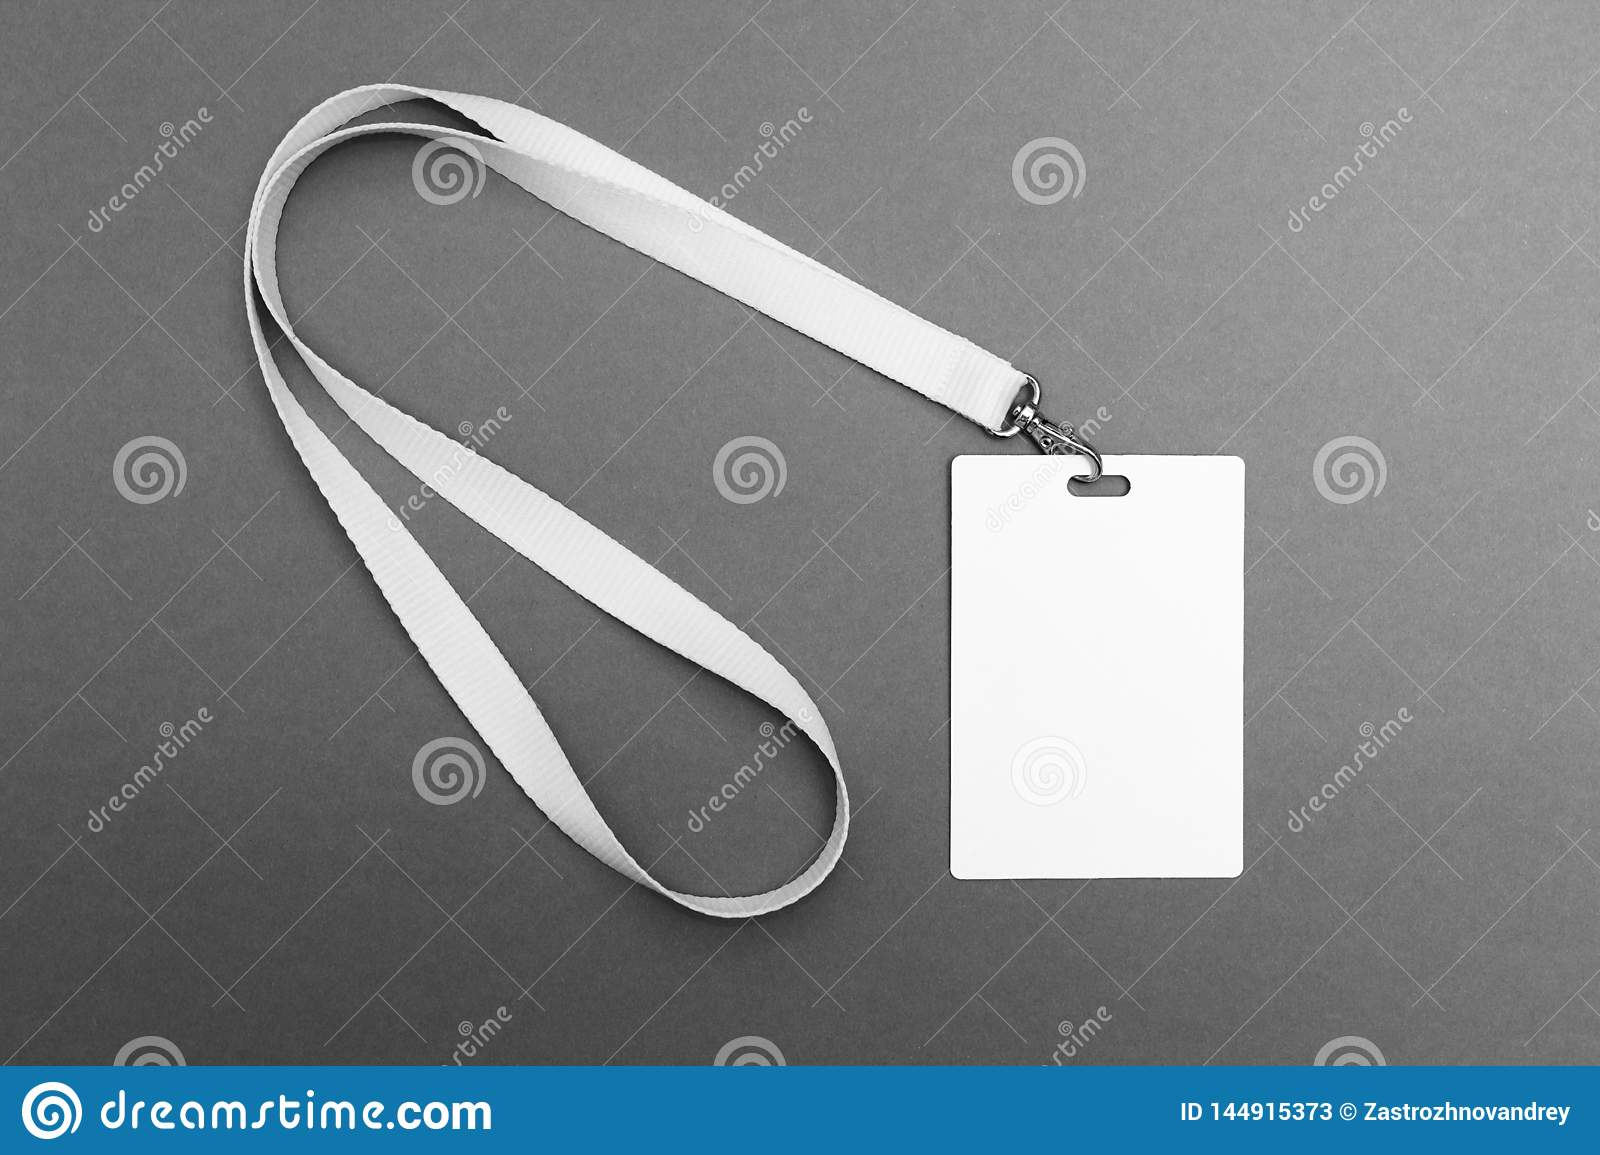 Empty Tag id on a gray background